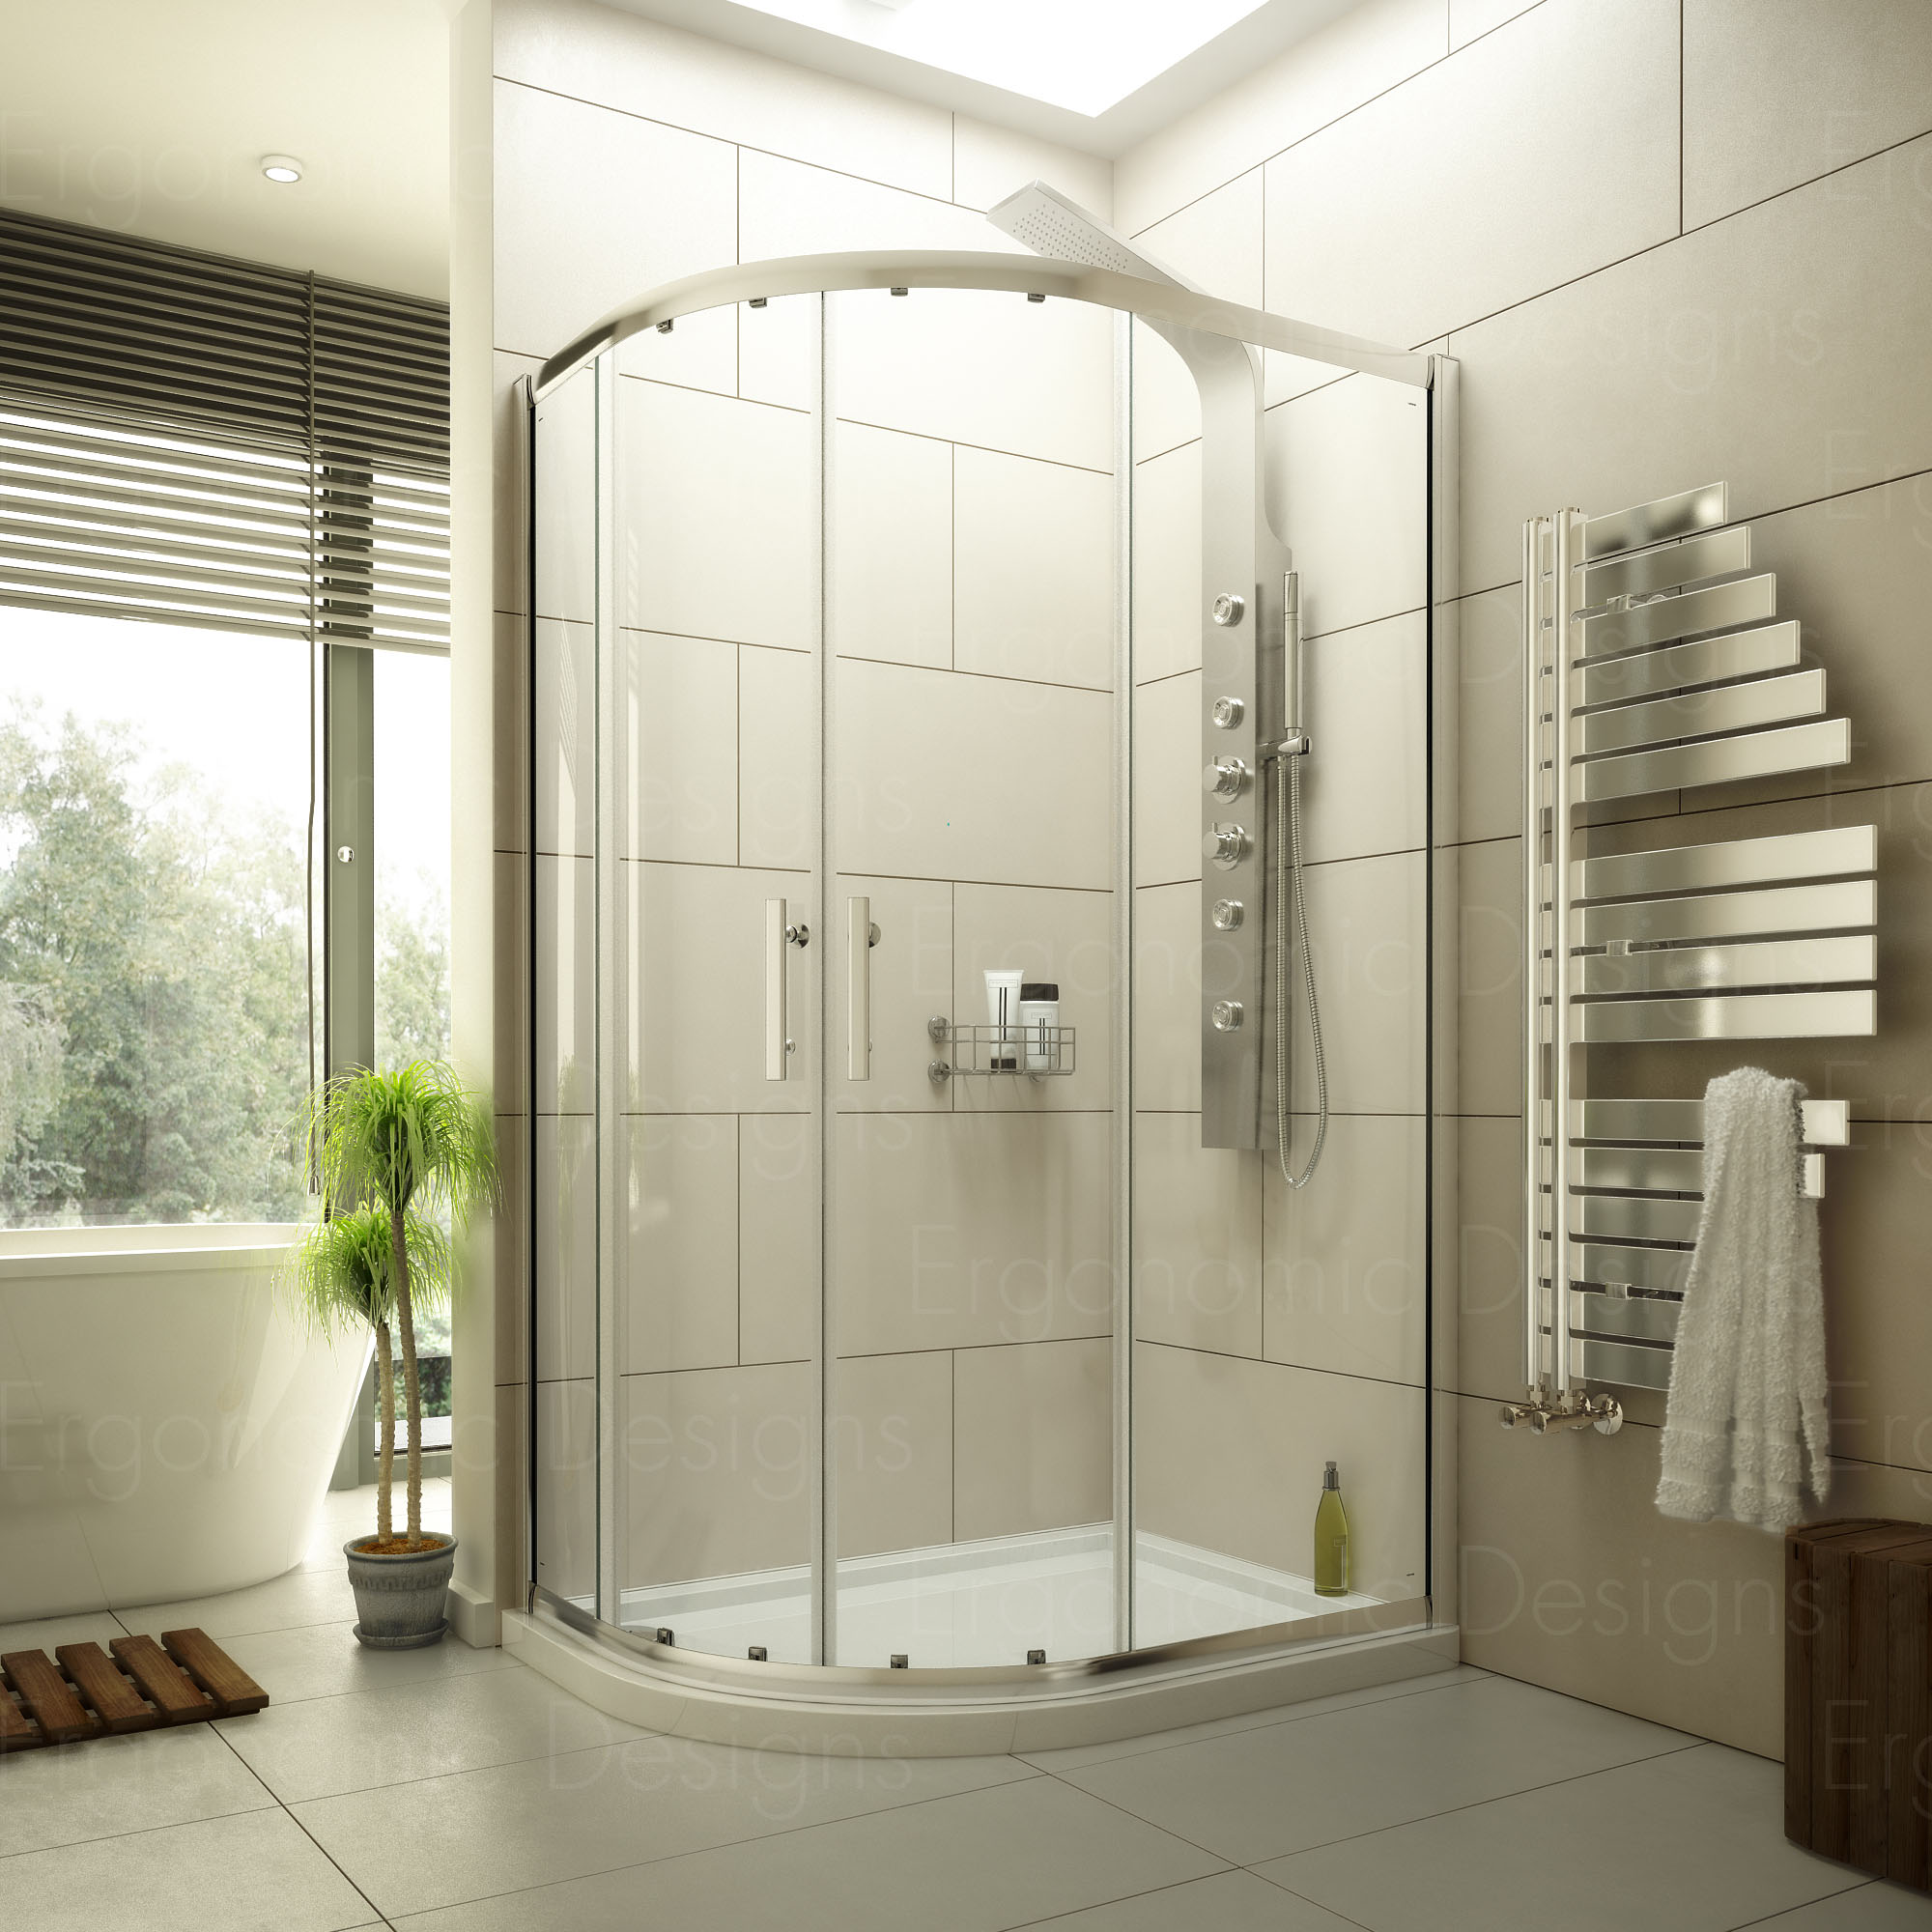 1200 X 900 Offset Quadrant Corner Shower Enclosure Cubicle With 6mm Glass Ebay